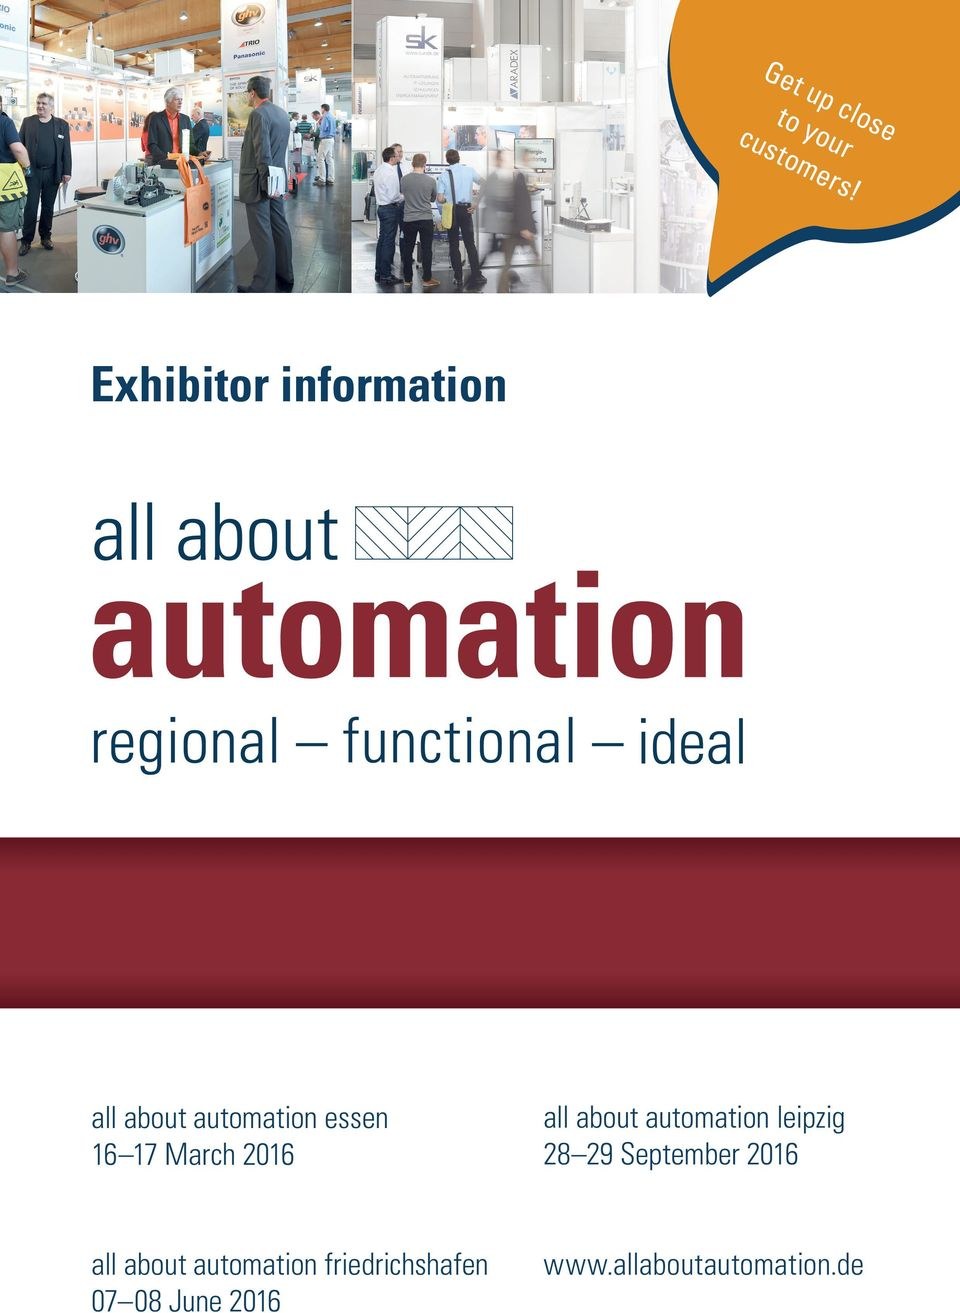 automation technology all about automation essen 16 17 March 2016 all about